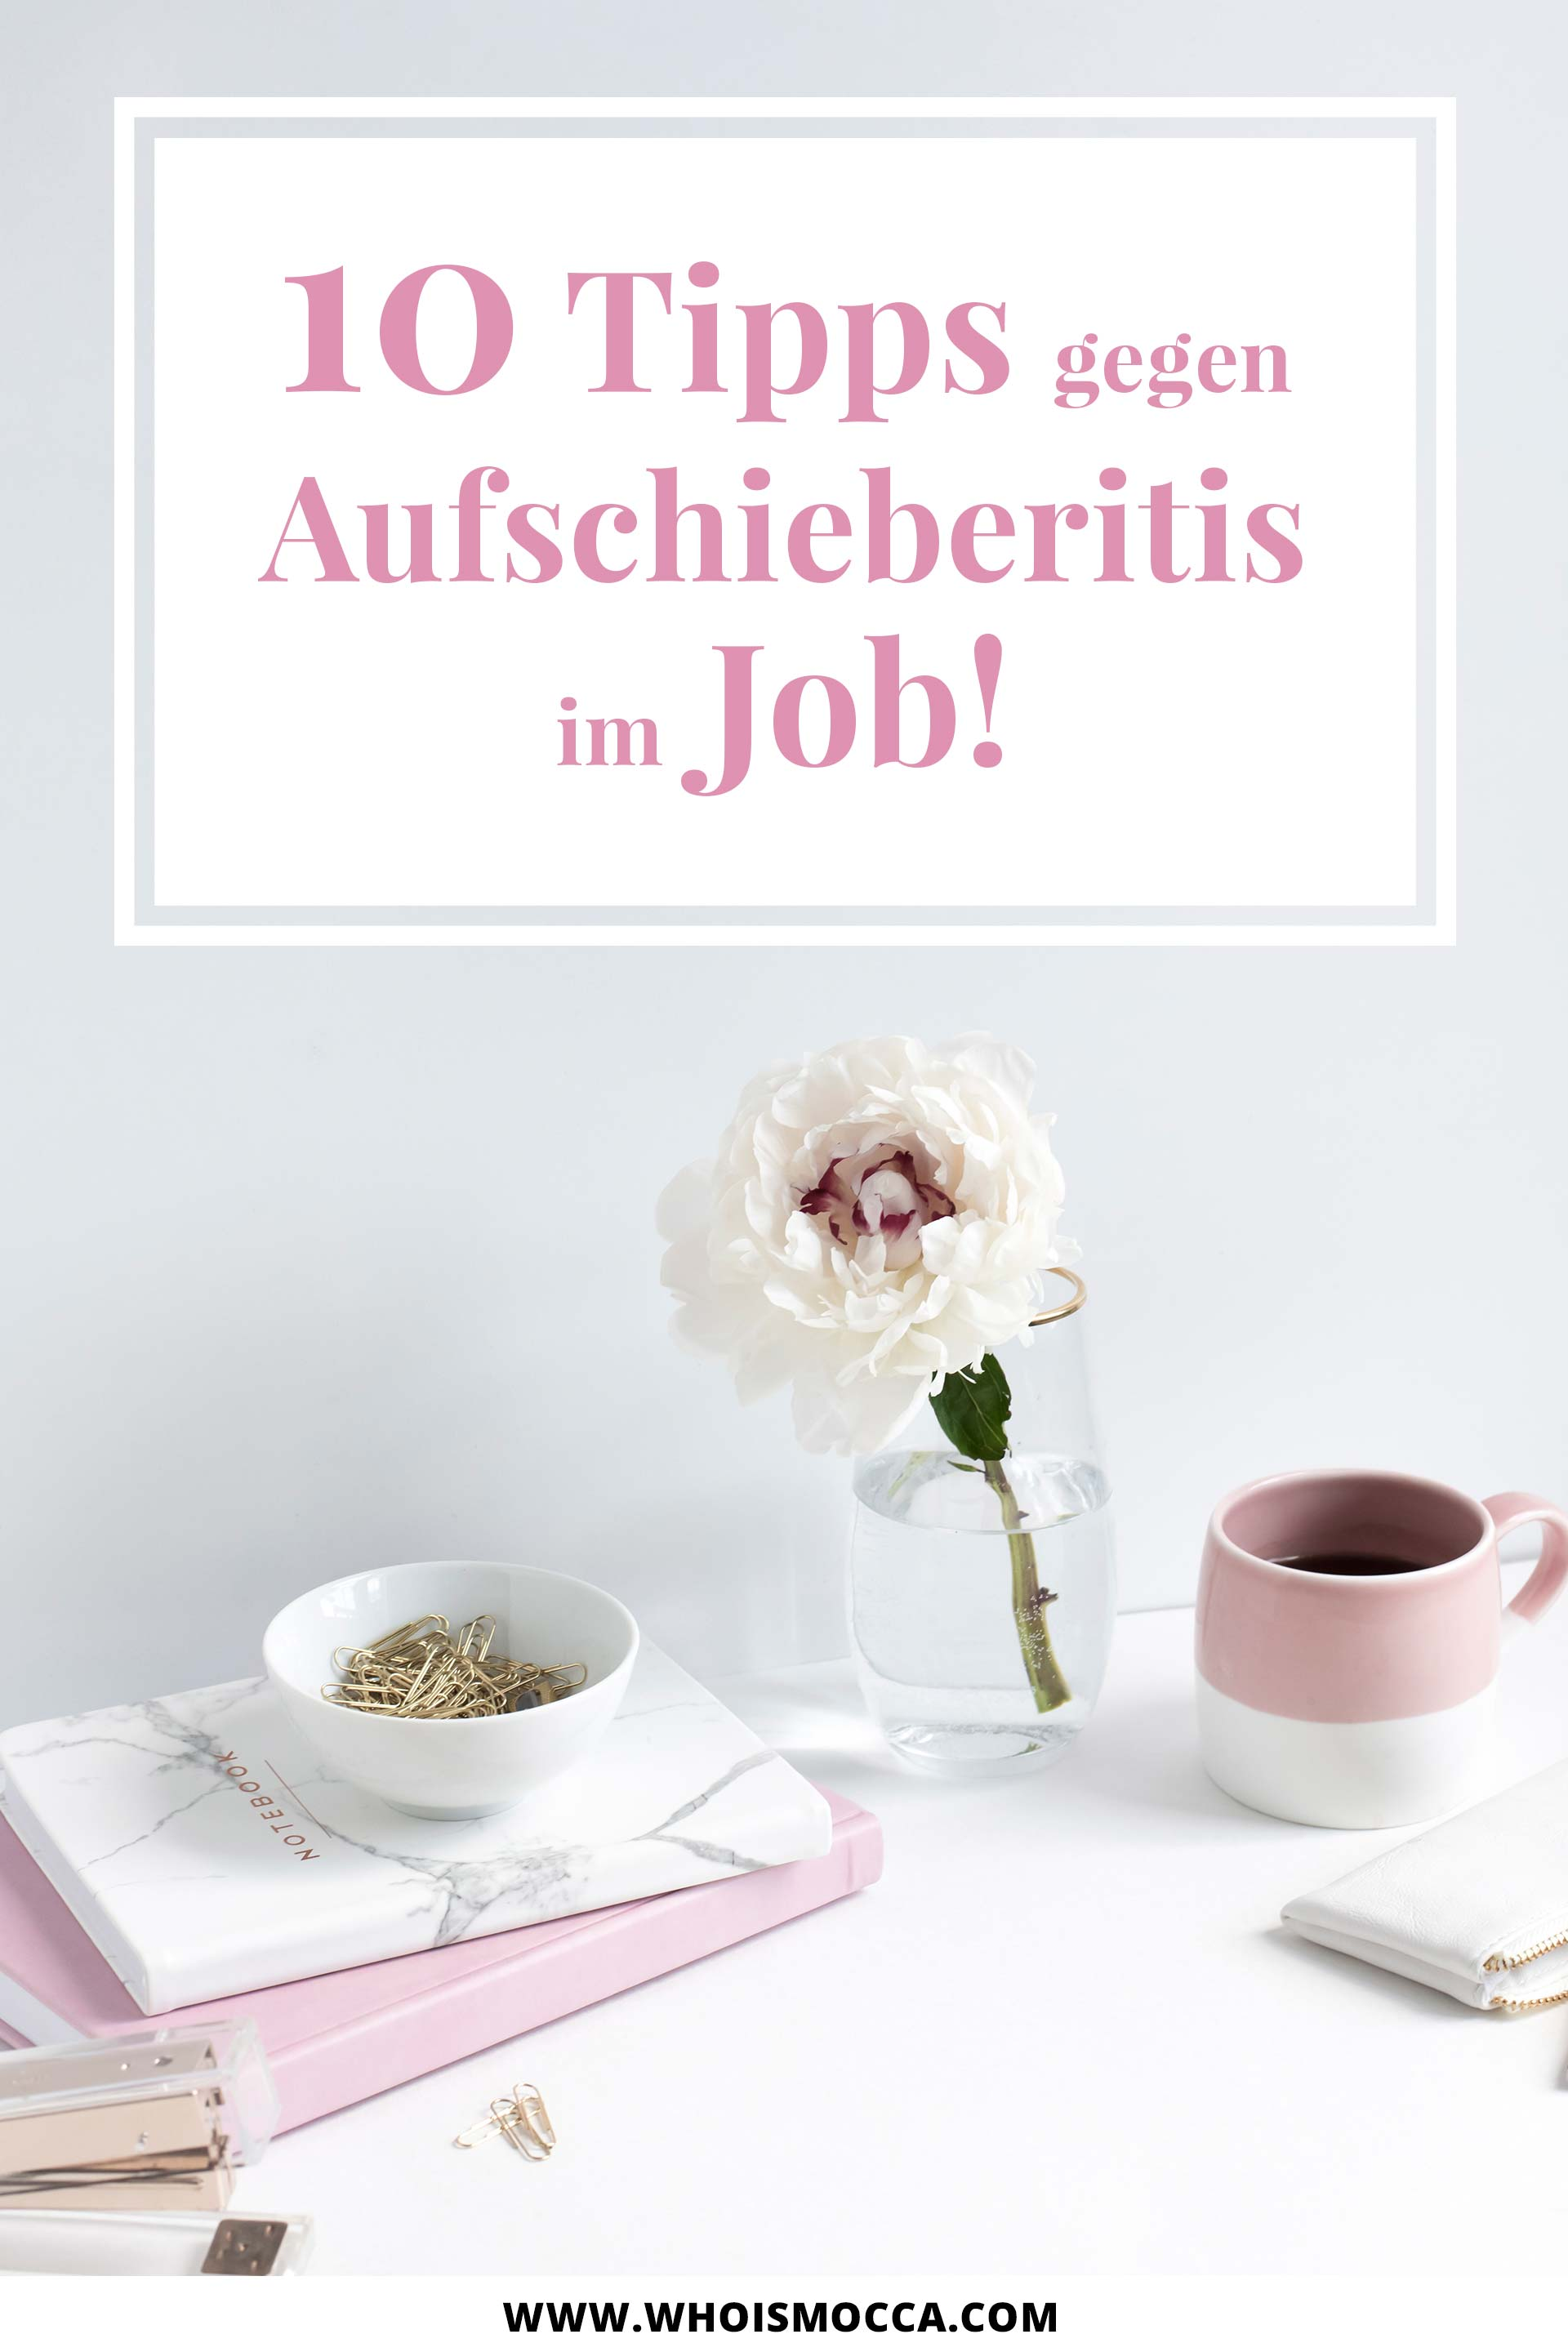 10 Tipps gegen Aufschieberitis im Job, Aufschieberitis bekämpfen, Tipps für Deadline-Junkies, Karriere Ratgeber für Frauen, Karriere Blog, Women at work, www.whoismocca.com